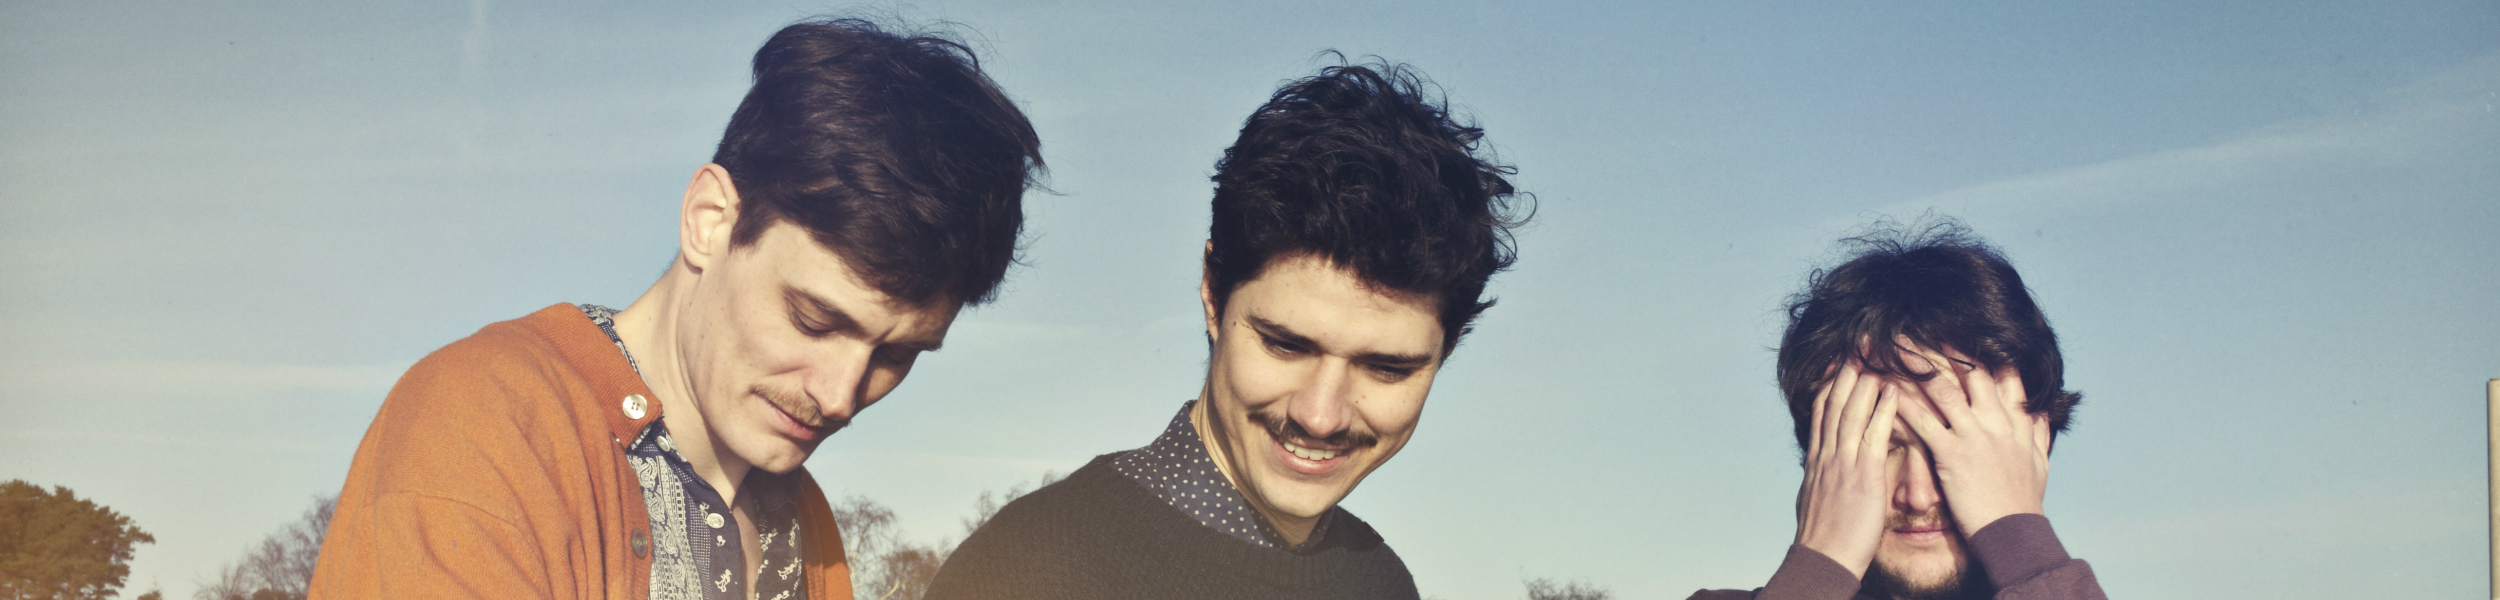 Efterklang - Efterklang Announce new single, 'I Was Playing Drums'